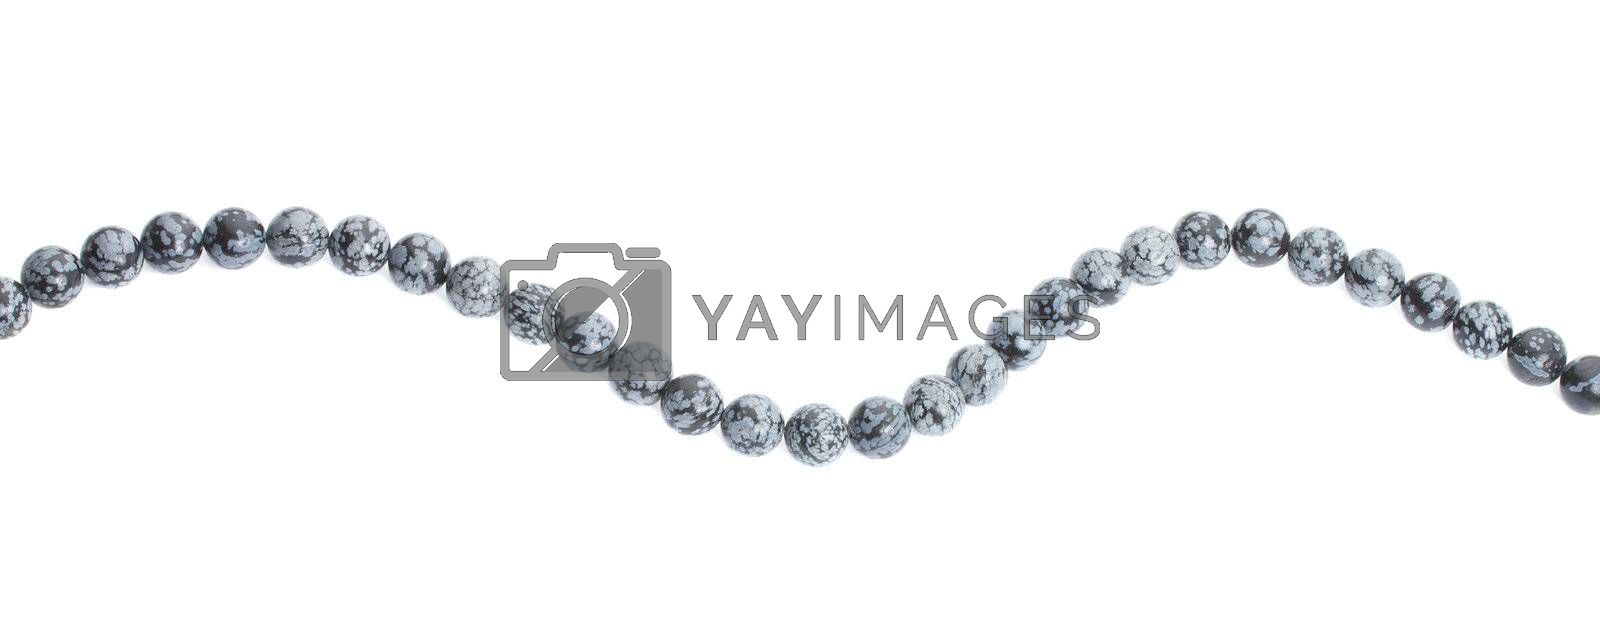 gray beads, isolated on white